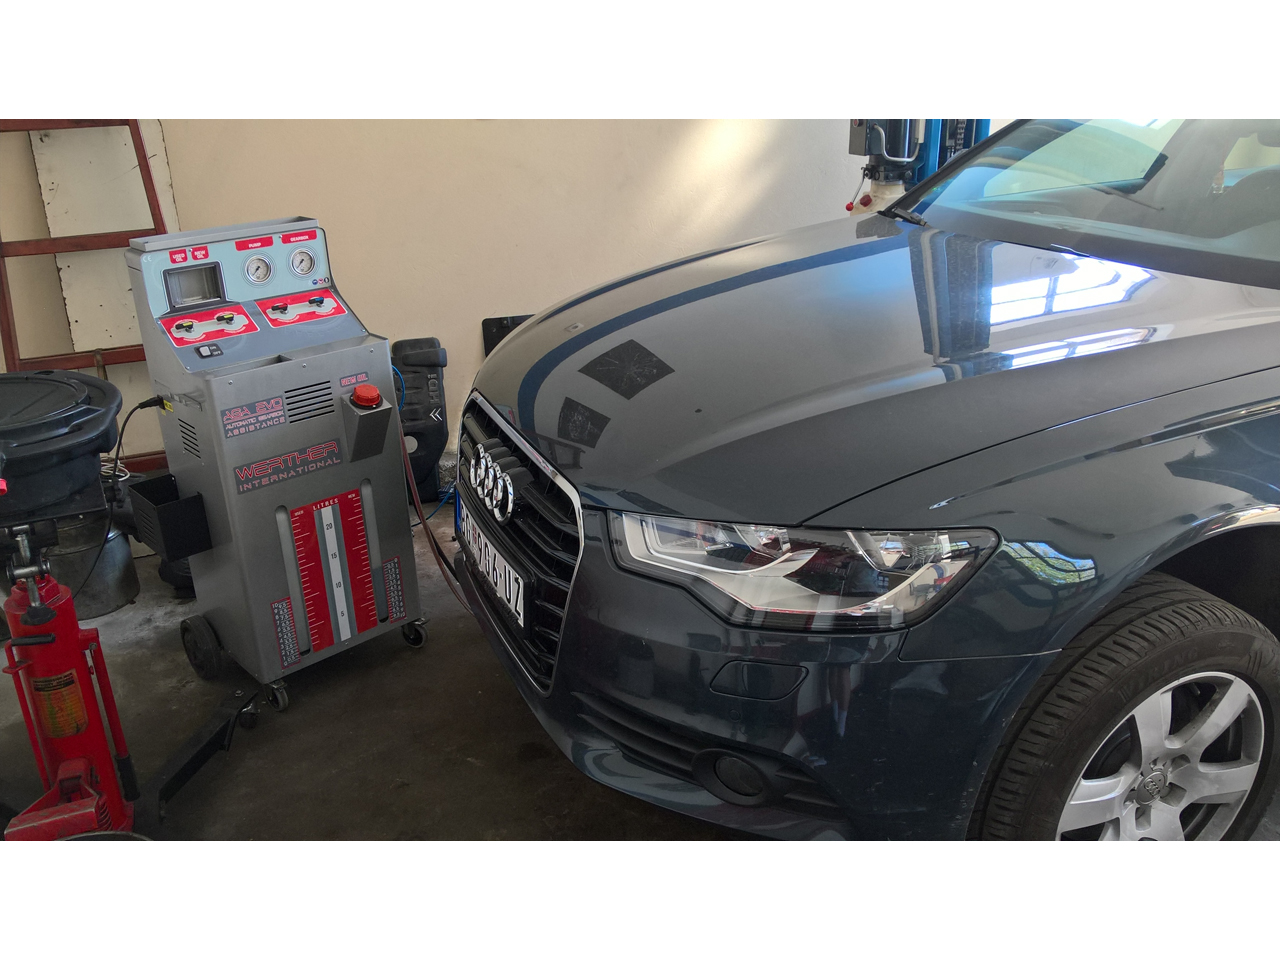 CAR SERVICING VN - GEAR SHIFTER REPAIRS Car service Beograd